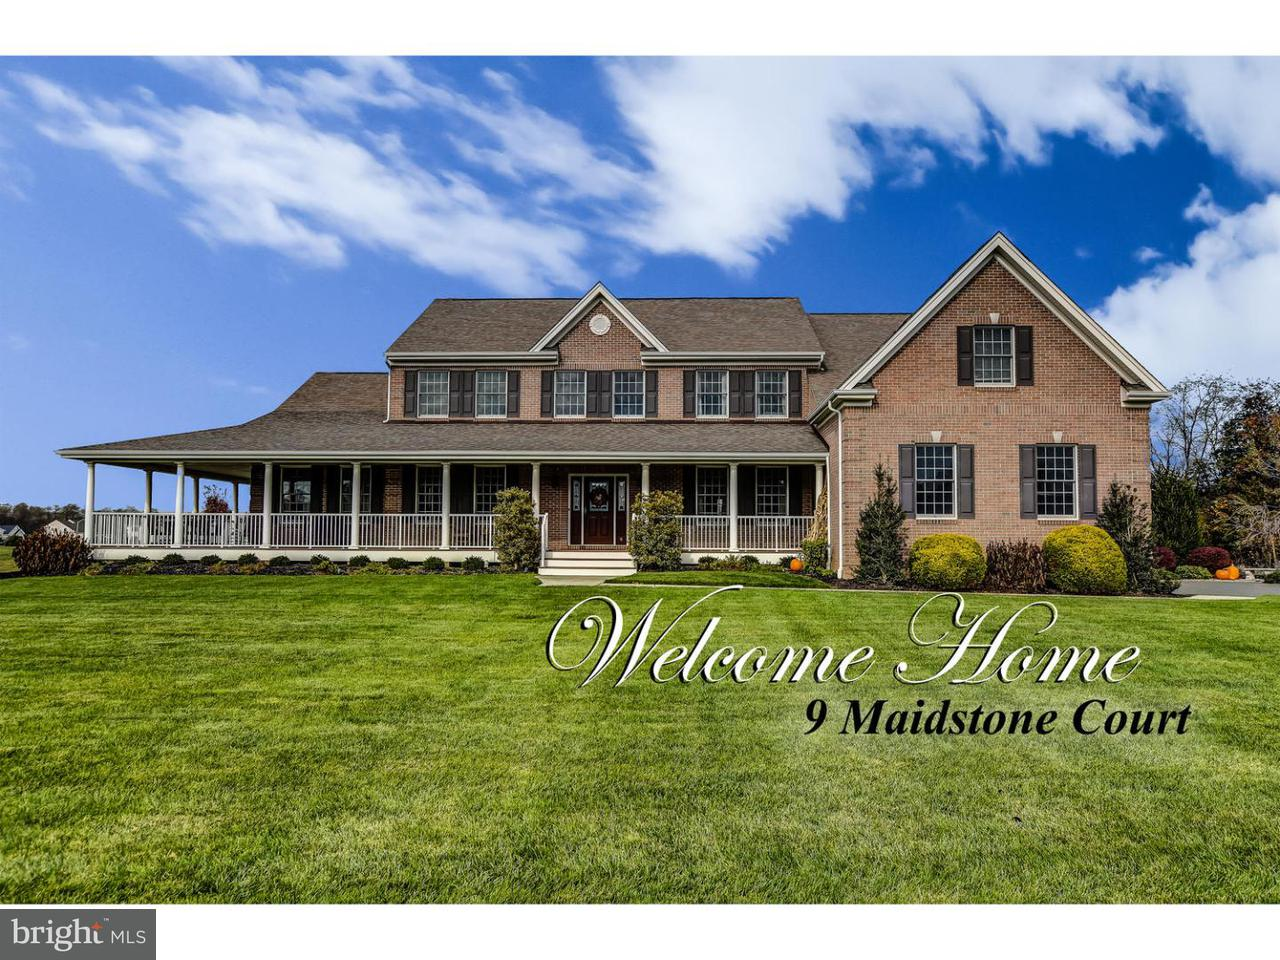 Maison unifamiliale pour l Vente à 9 MAIDSTONE Court South Brunswick, New Jersey 08852 États-UnisDans/Autour: South Brunswick Township